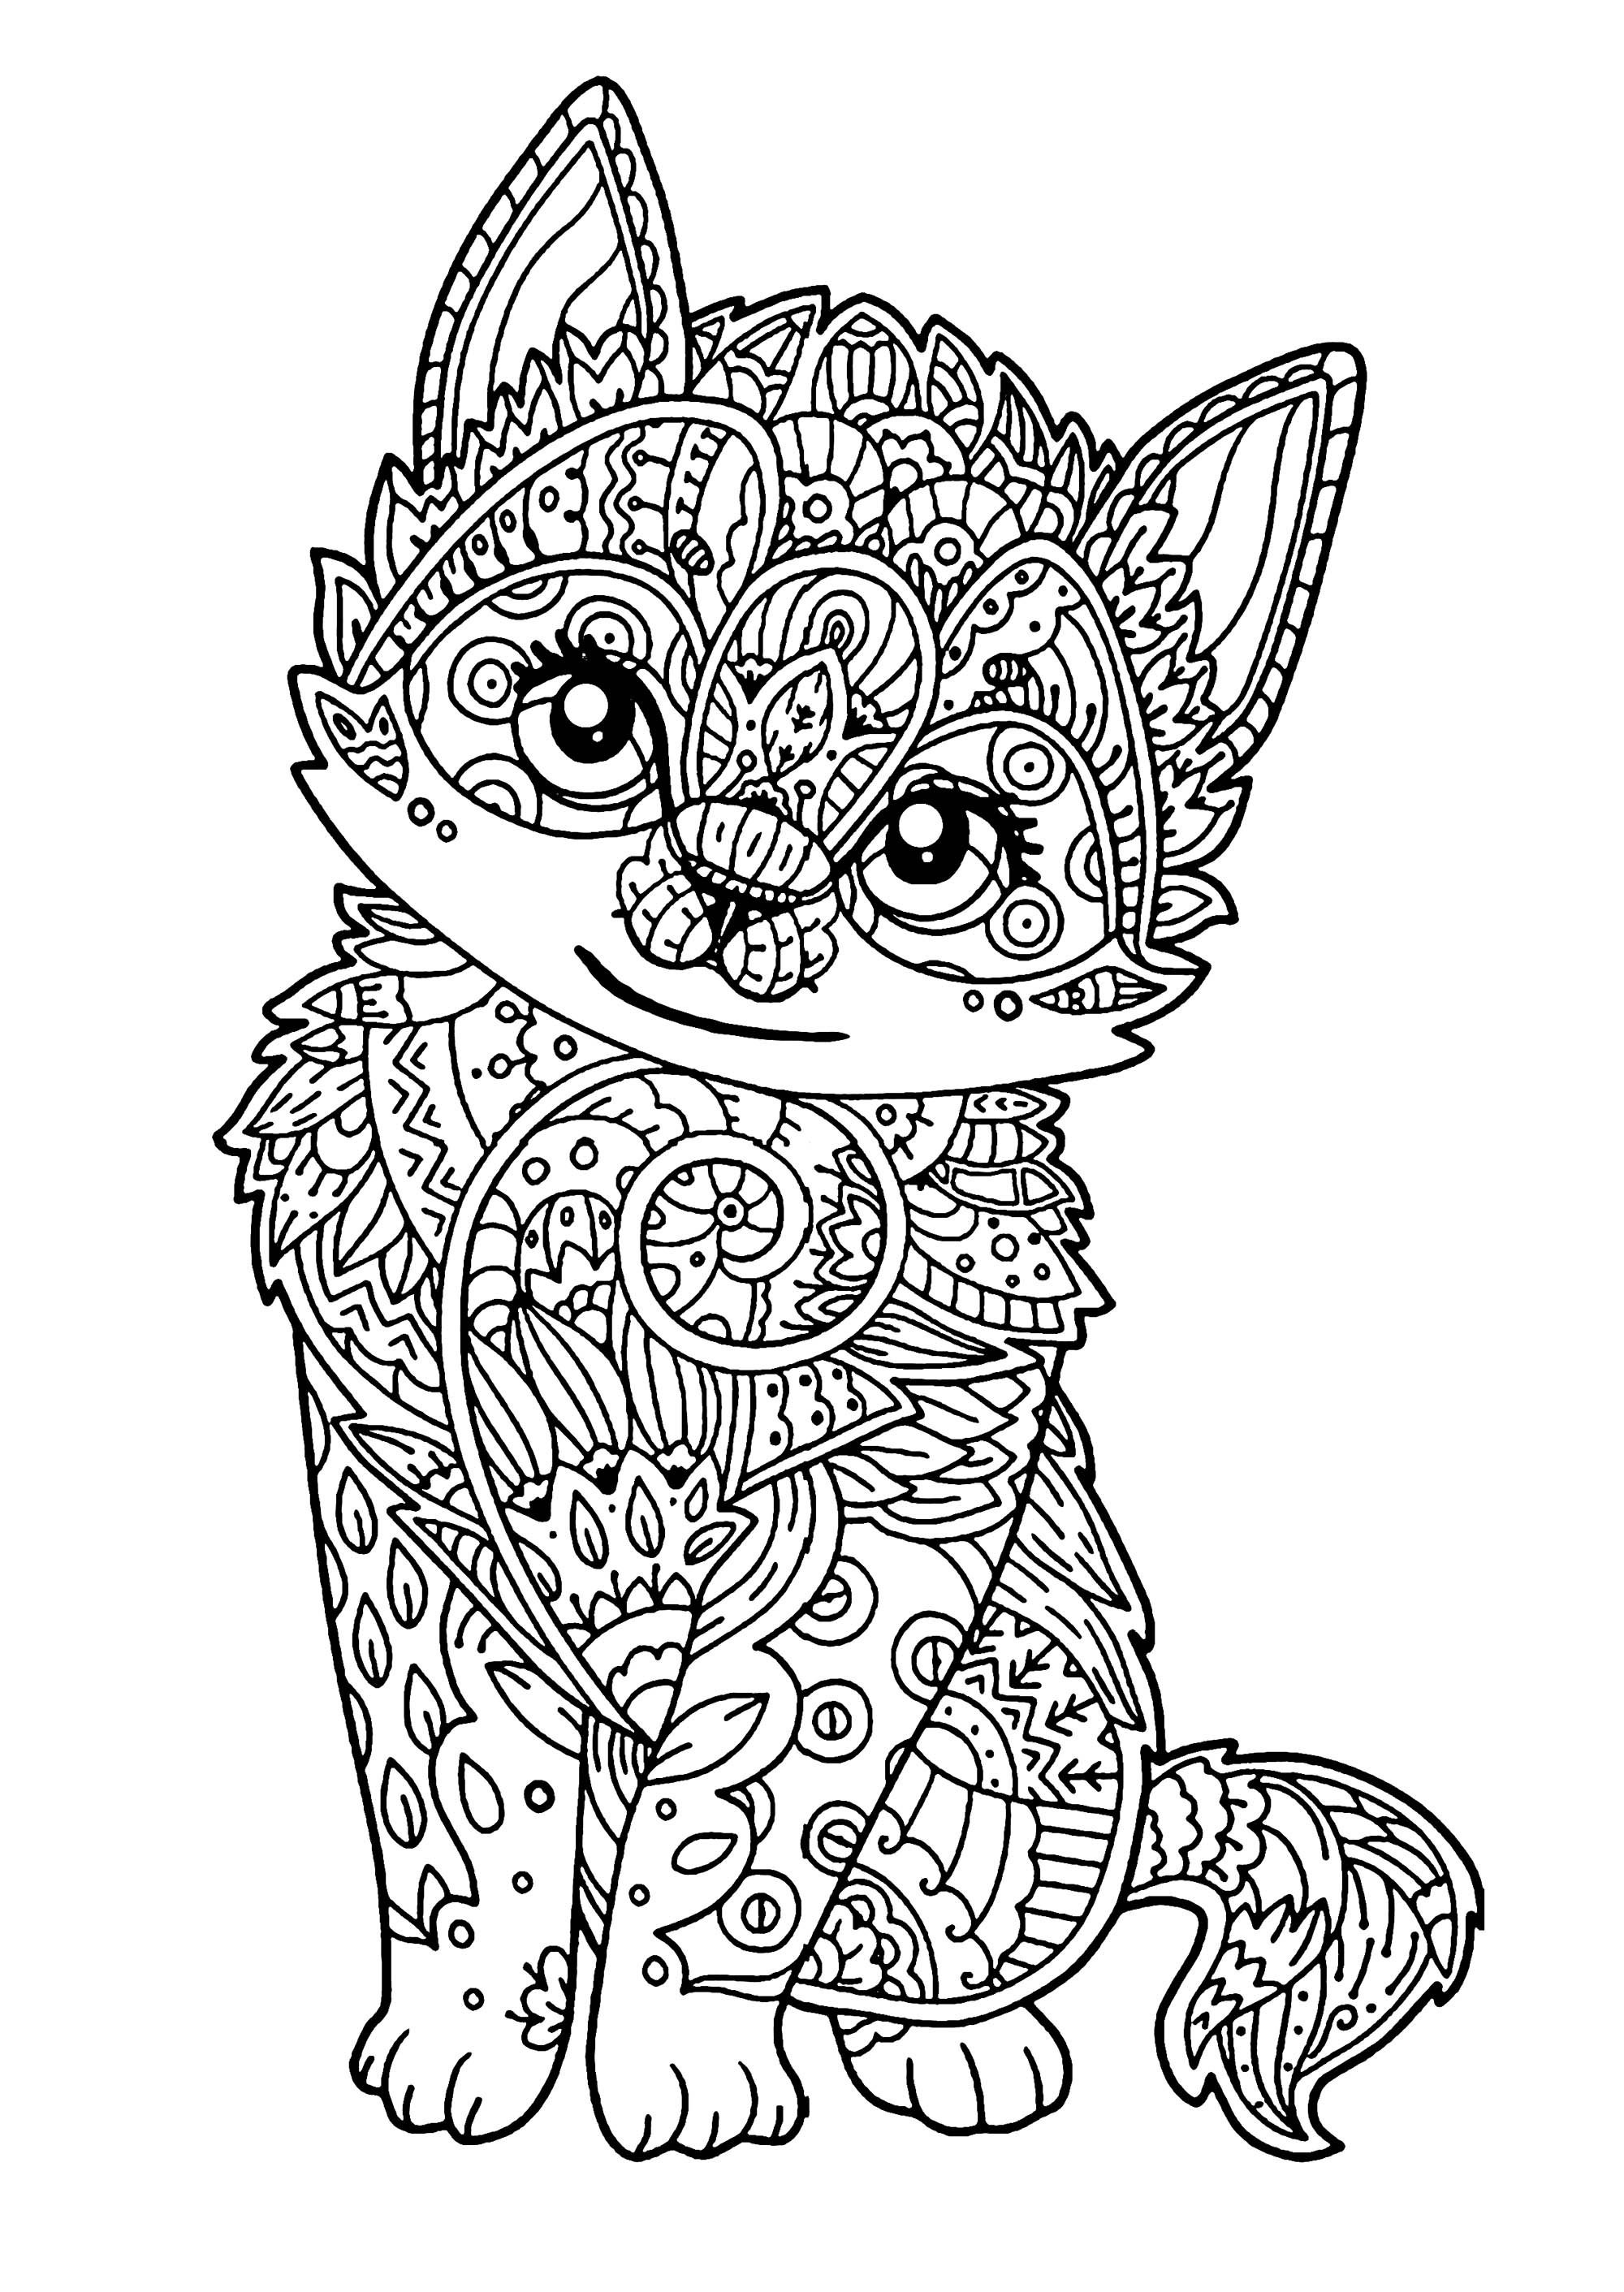 Ausmalbilder Querflöte Einzigartig Cat Coloring Pages to Print Printable Worksheets and Activit Sammlung